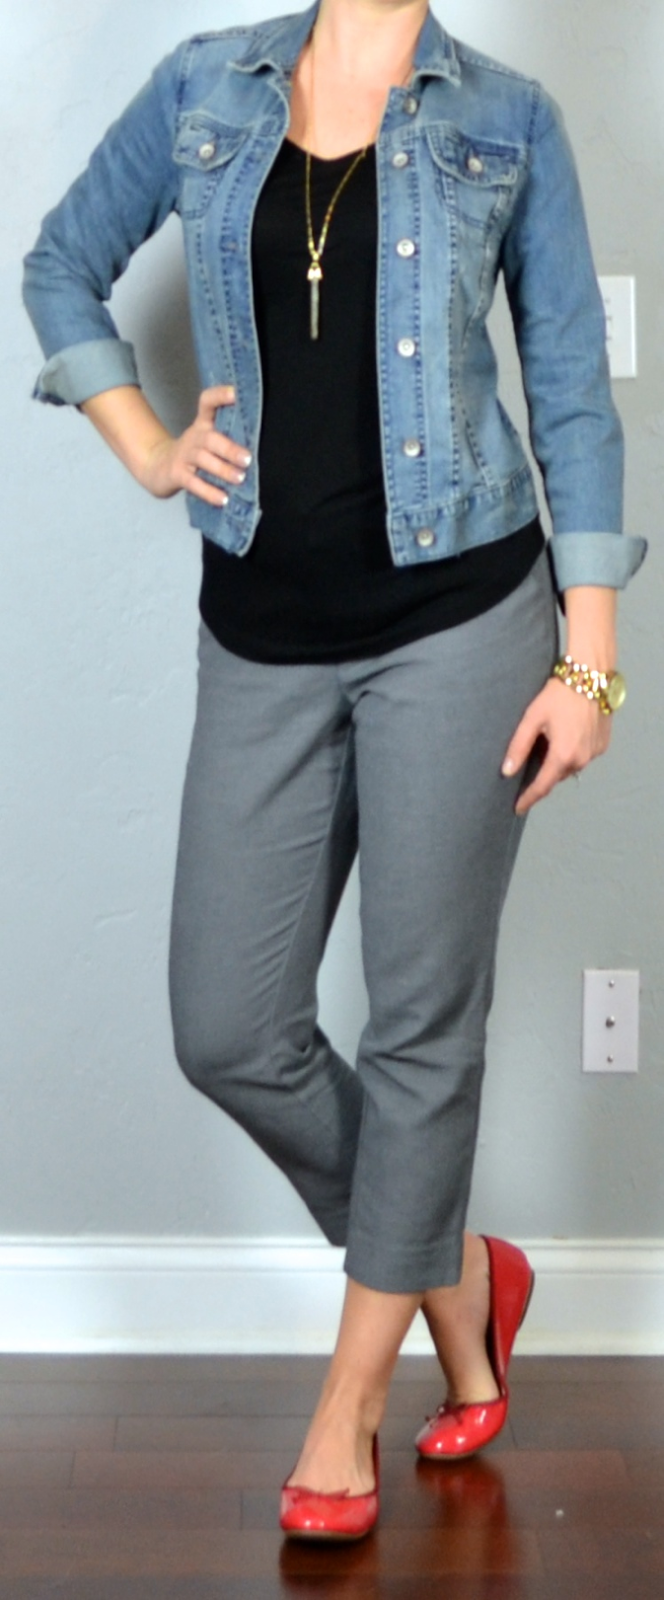 Outfit post jean jacket black shirt grey tailored ankle pants red ballet flats